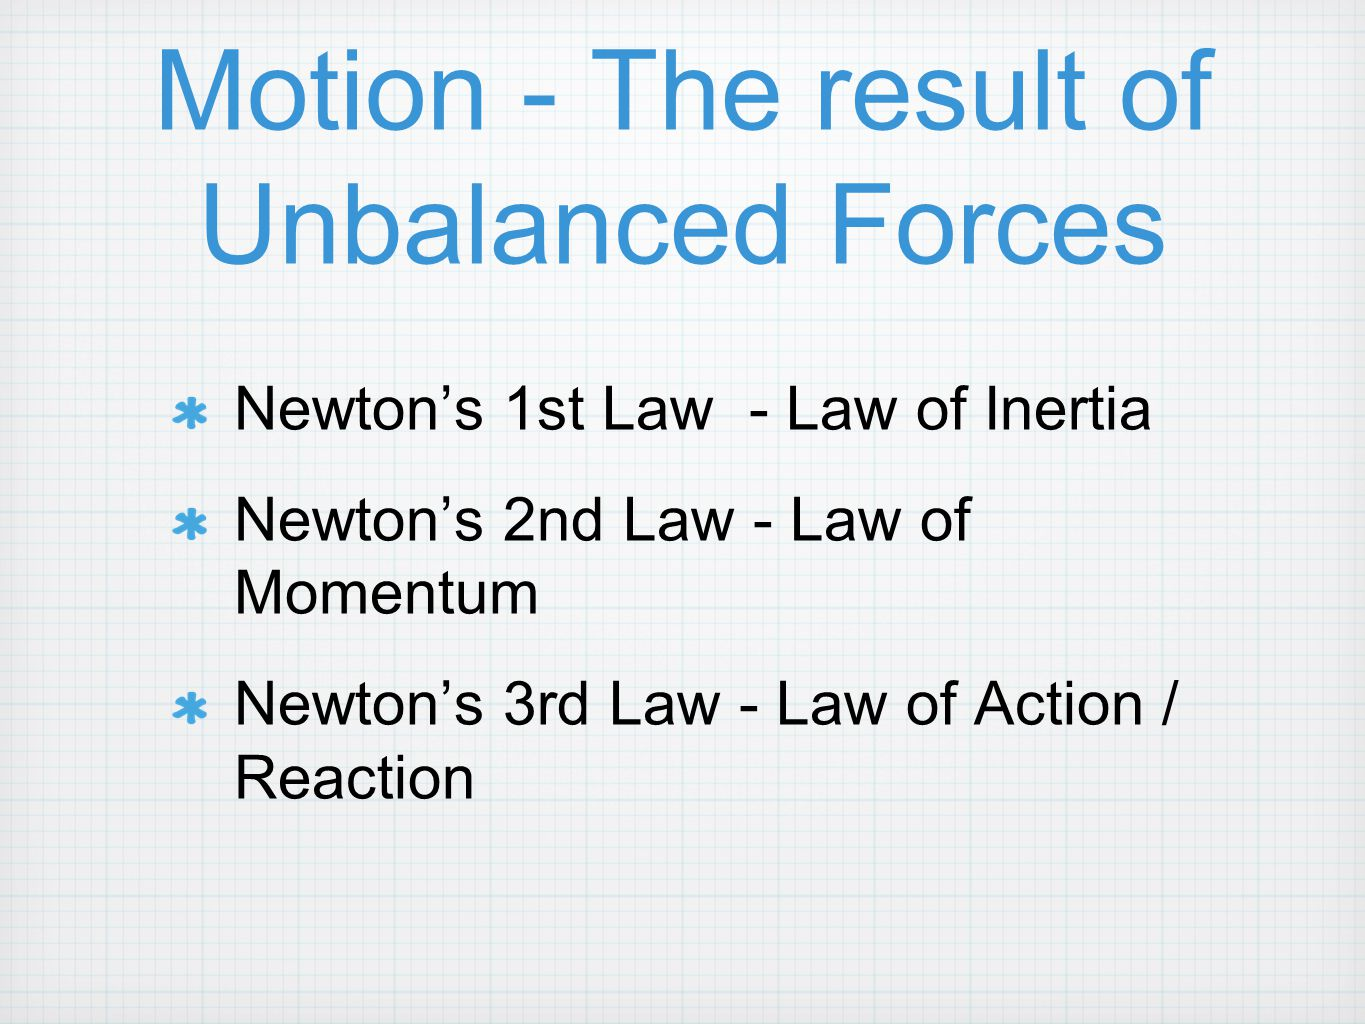 Motion - The result of Unbalanced Forces Newton's 1st Law - Law of Inertia Newton's 2nd Law - Law of Momentum Newton's 3rd Law - Law of Action / React